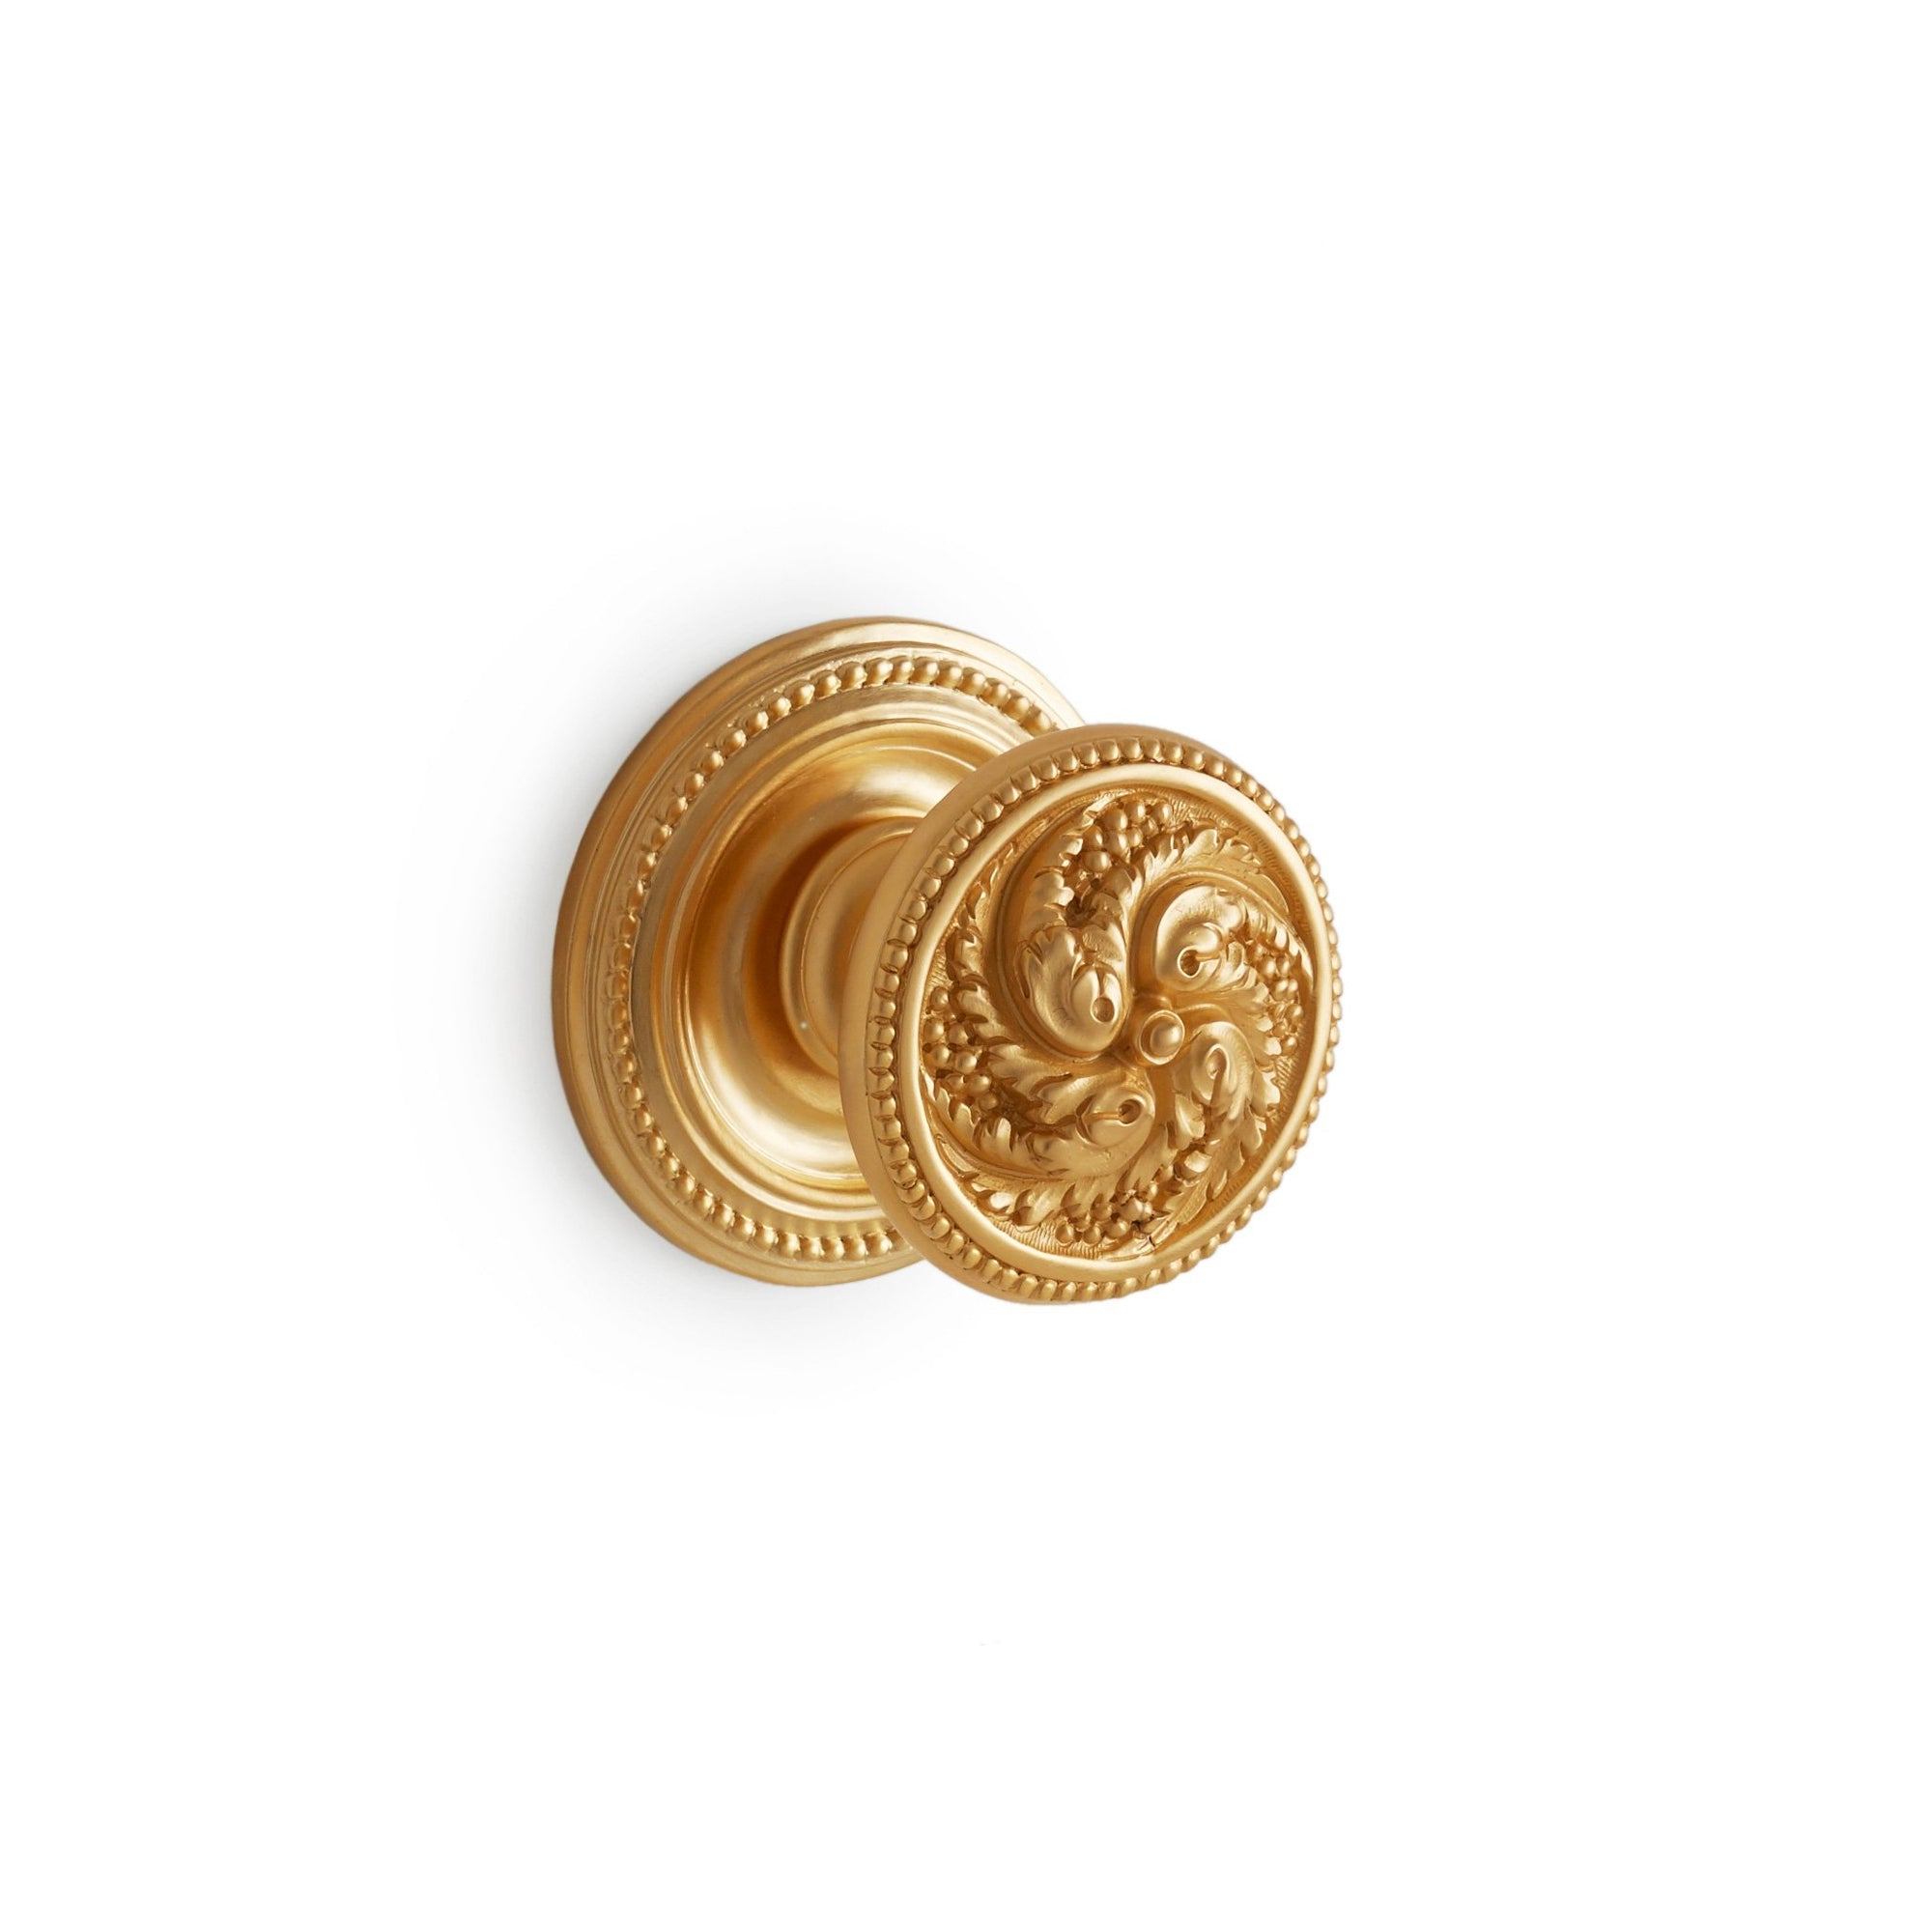 0079DOR-GP Sherle Wagner International Beaded Rococo Door Knob in Gold Plate metal finish